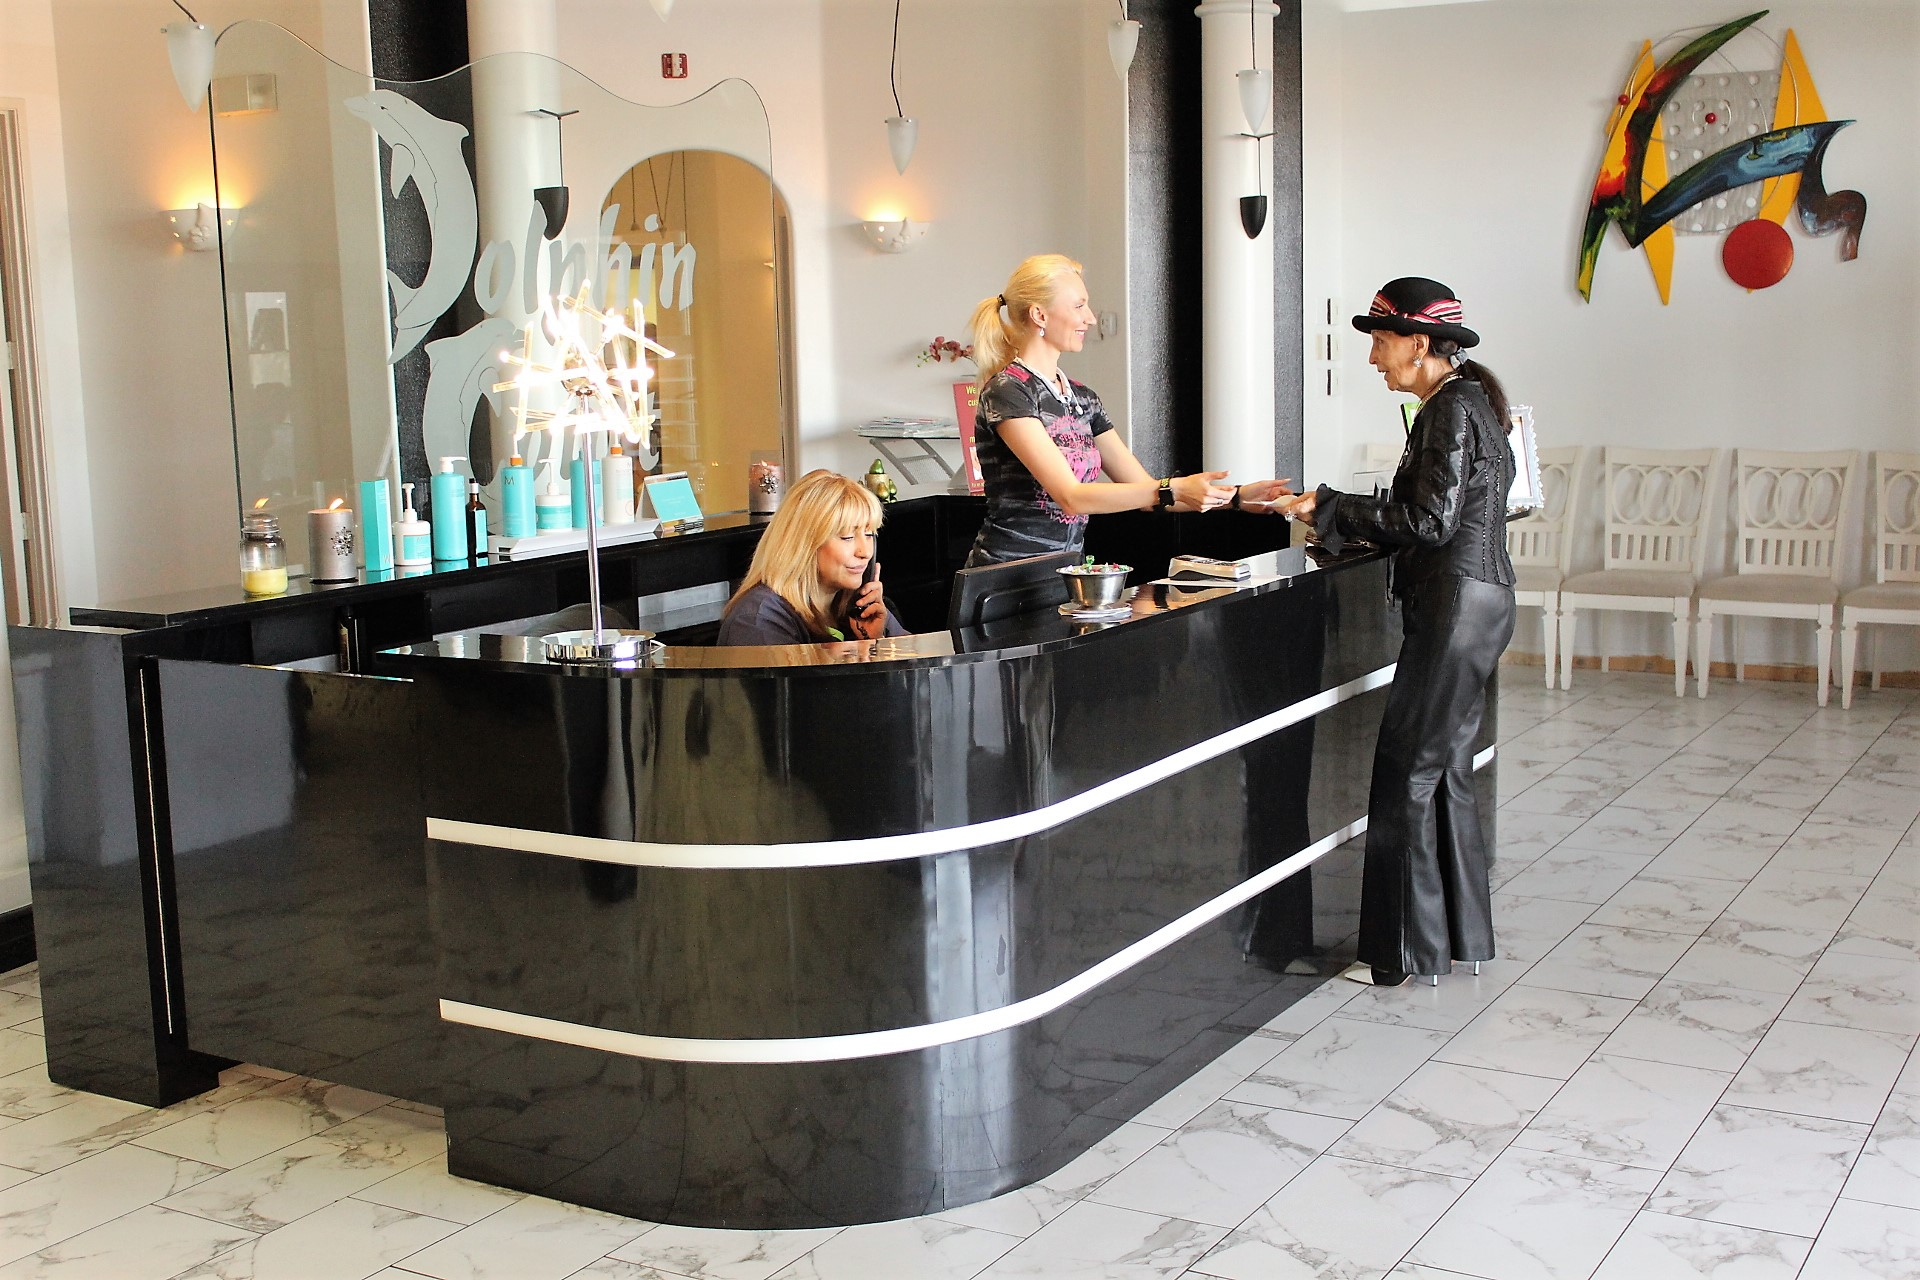 Dolphin Court Salon Day Spa, Las Vegas Nevada Nv-6291